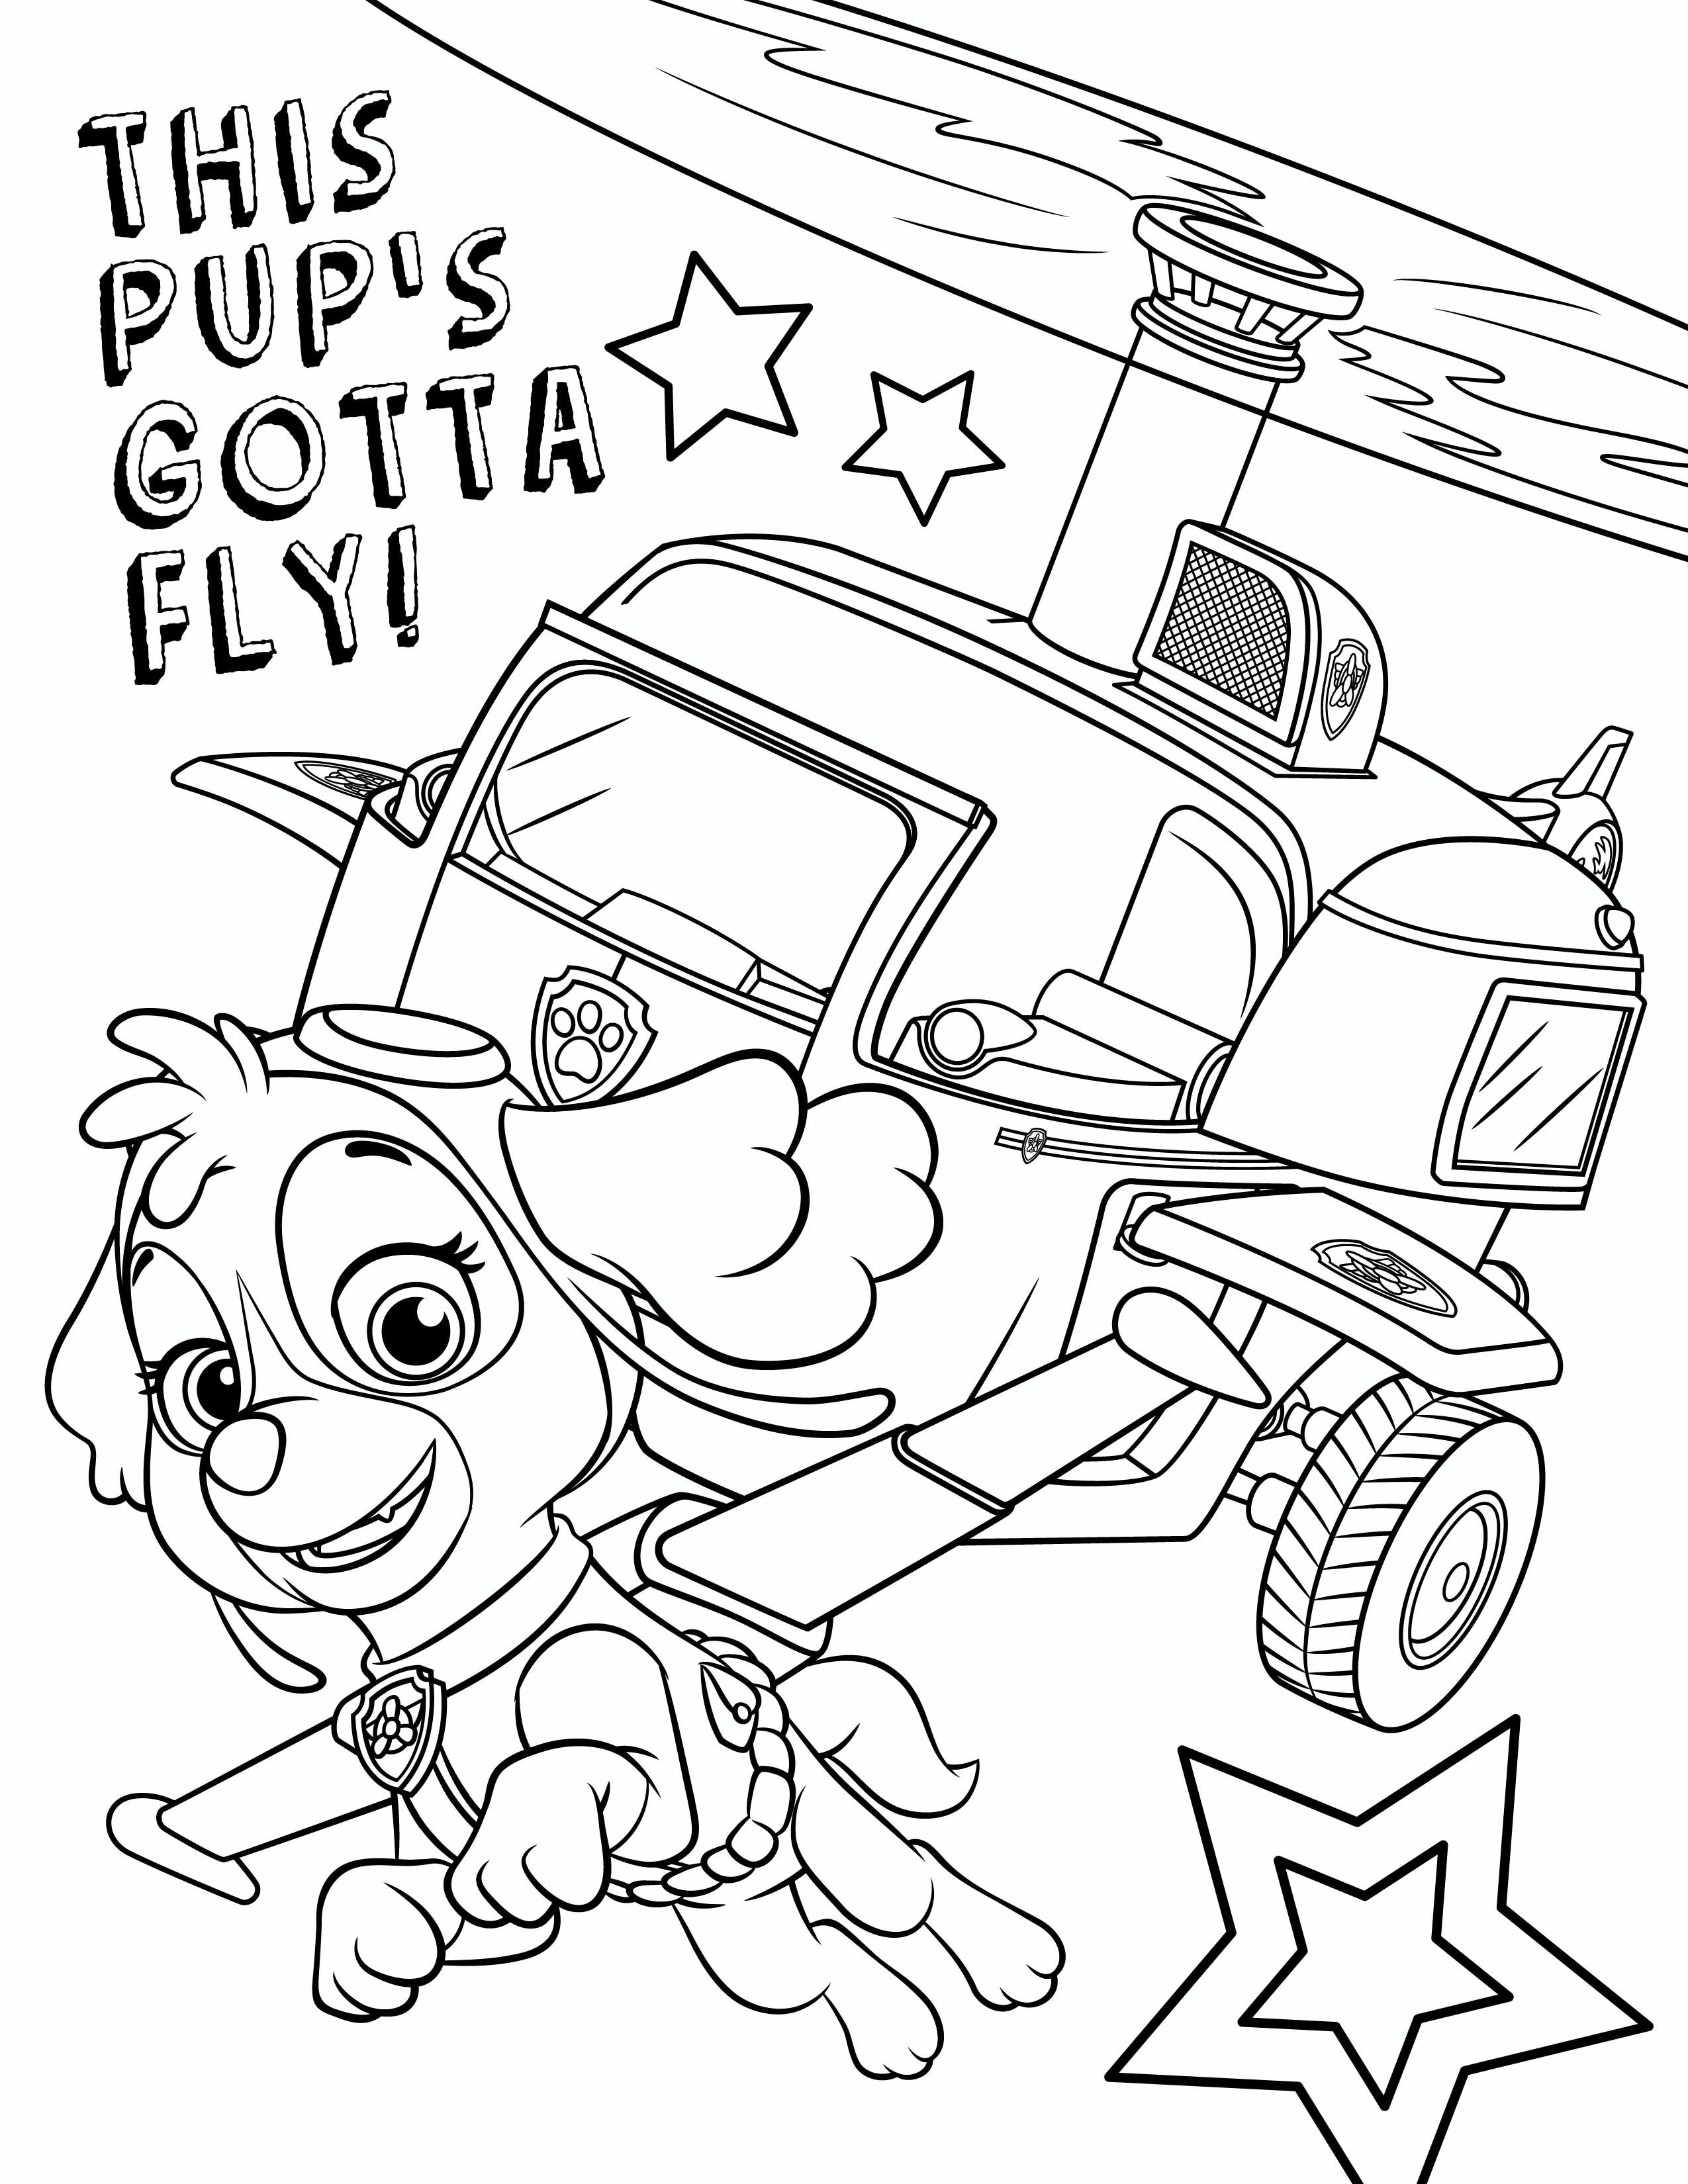 Paw Patrol Coloring Pages Harry Potter Playing Quidditch Coloring Pages Color Paw Patrol